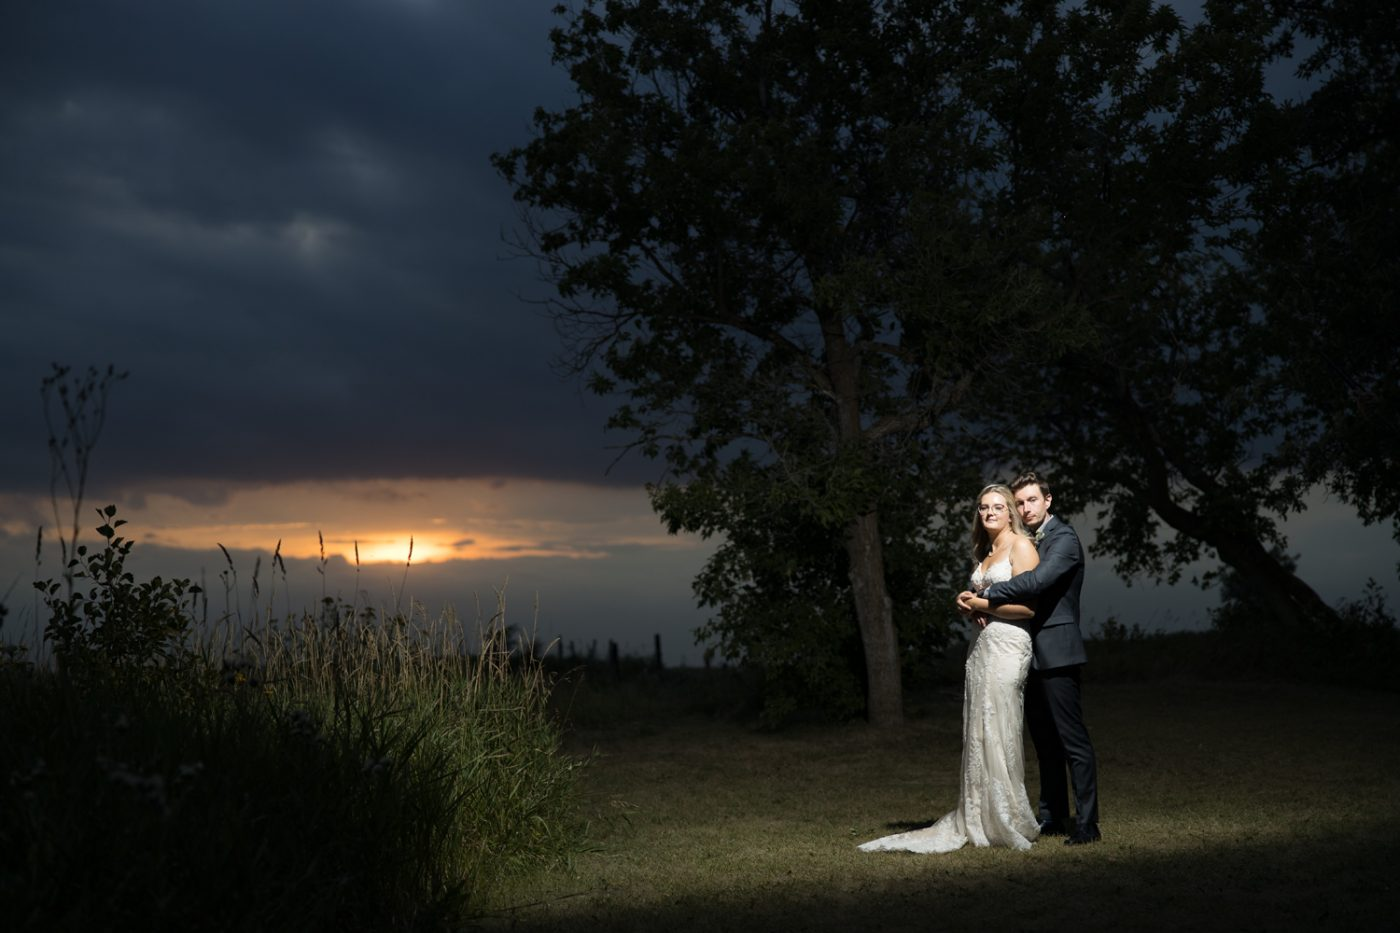 Bride and groom standing under a spotlight in a field with the sun setting in the background